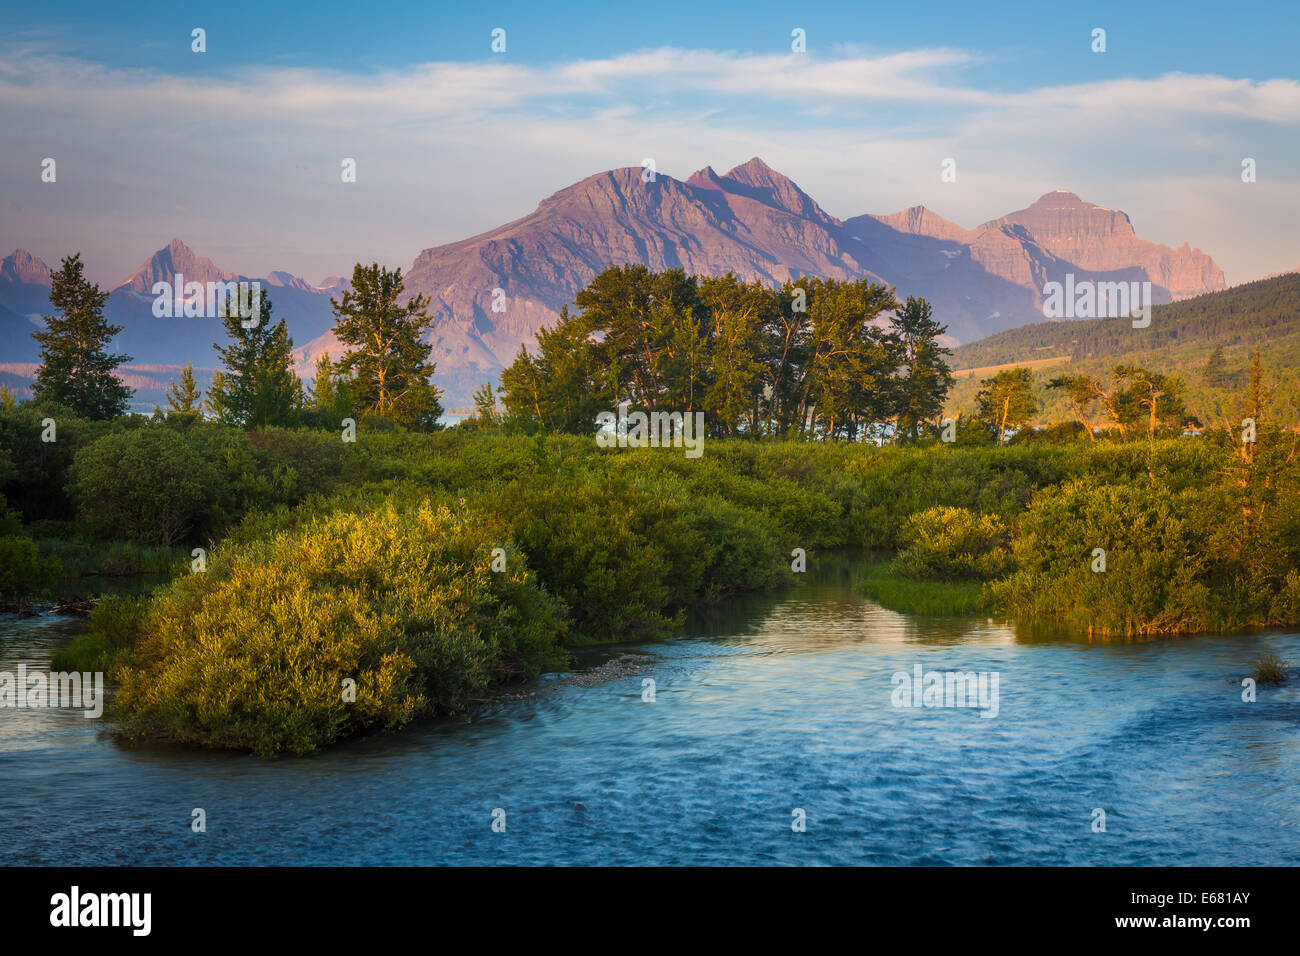 Divide Creek in Glacier National Park,  Montana, on the Canada–United States border - Stock Image